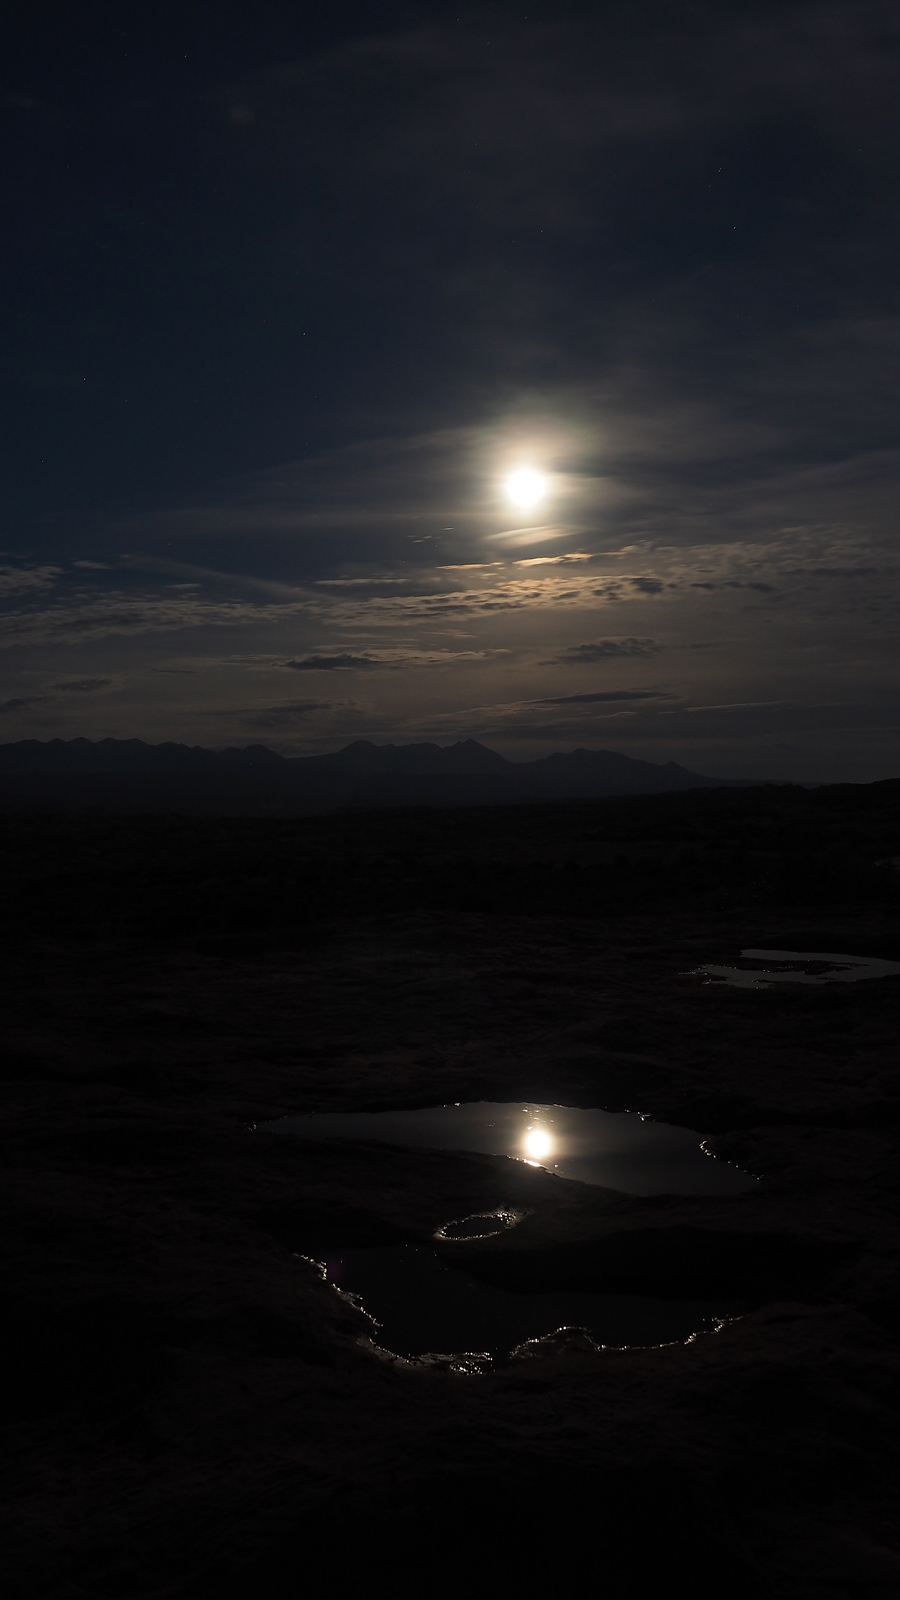 Arches National Park Vollmond beim La Sal Mountains Viewpoint